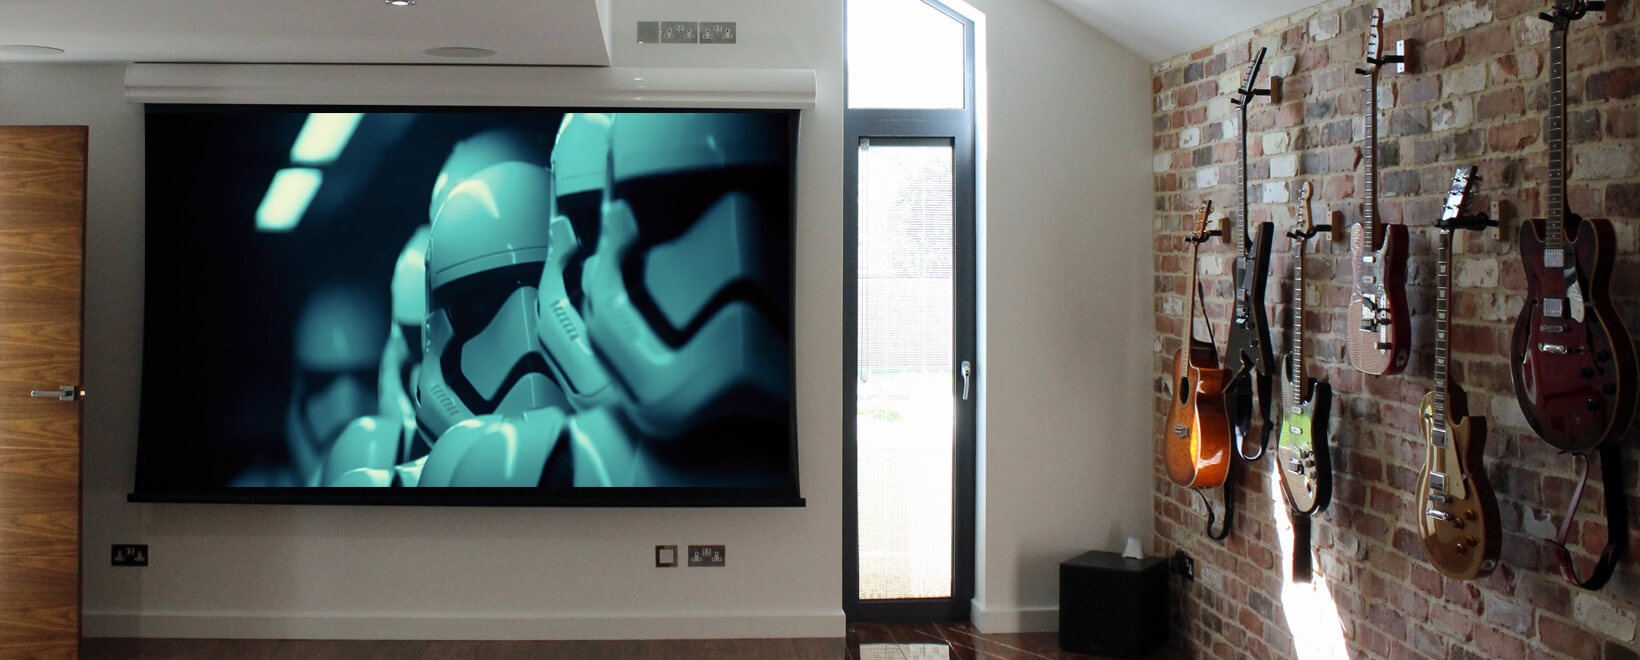 home cinema projector screen